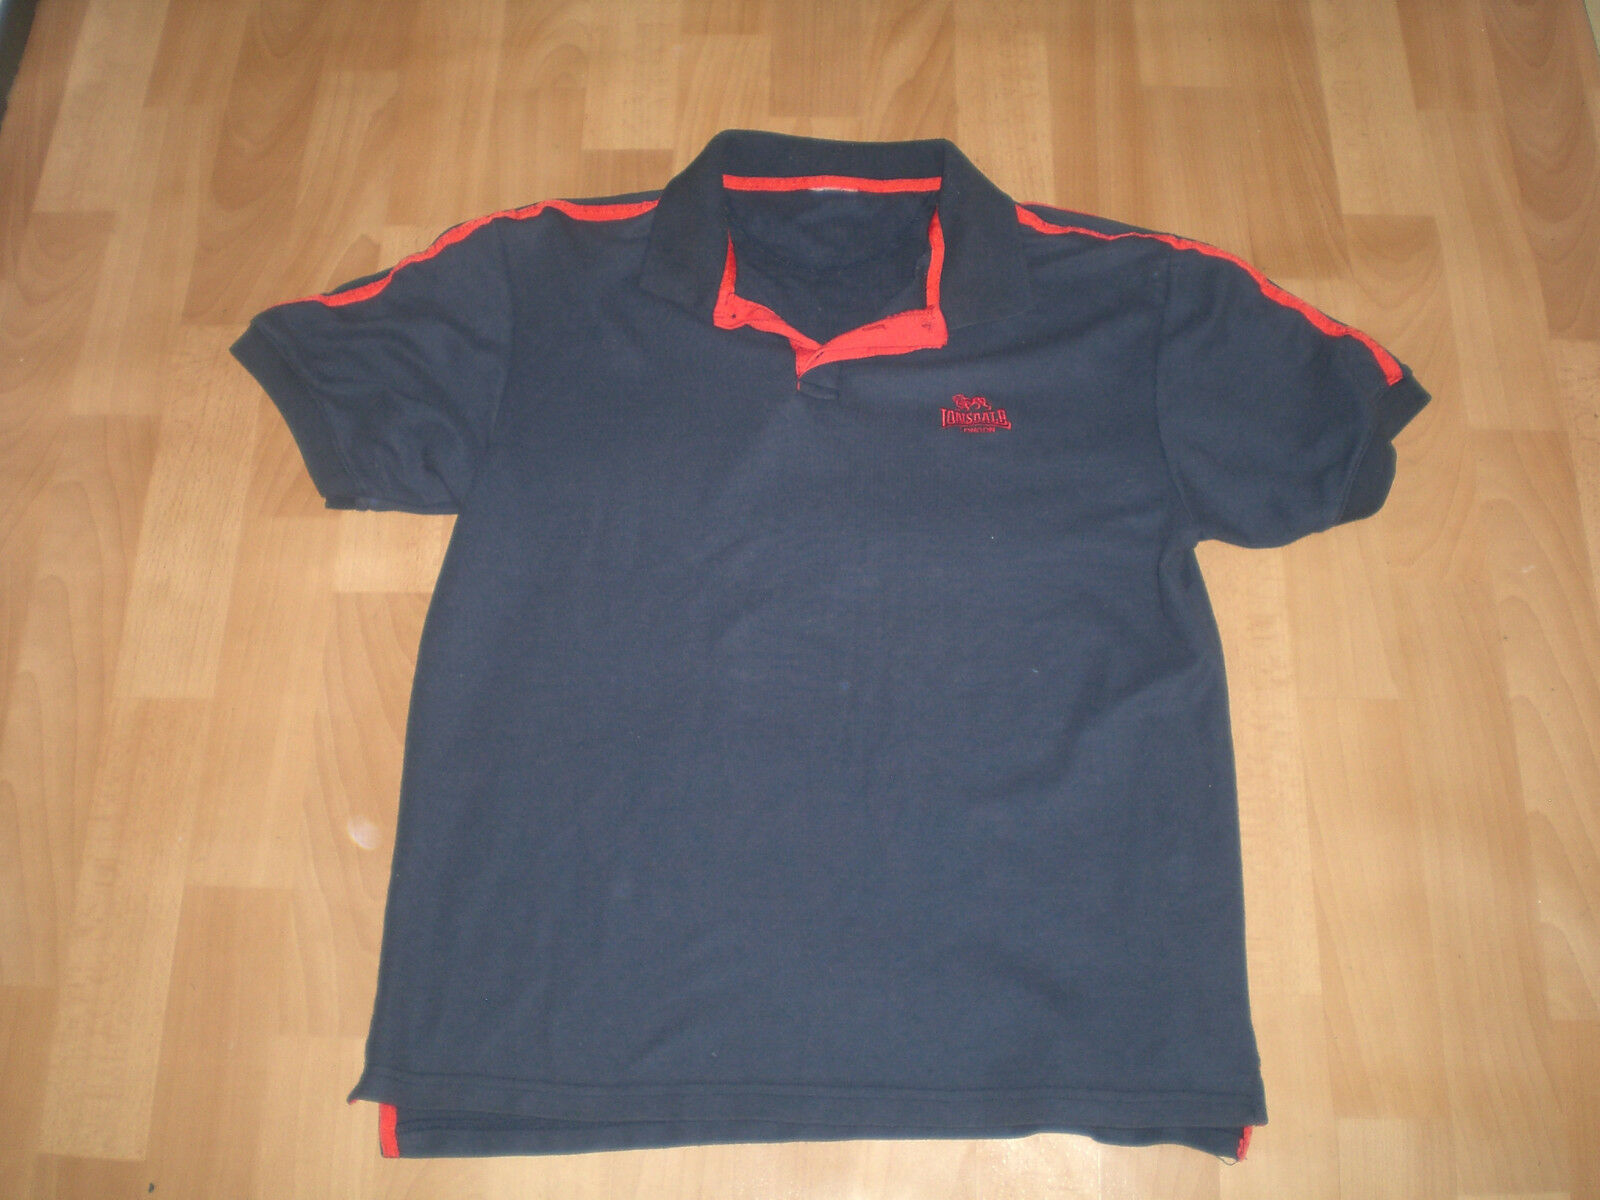 lonsdale mens polo t shirt navy blue red size xl. Black Bedroom Furniture Sets. Home Design Ideas